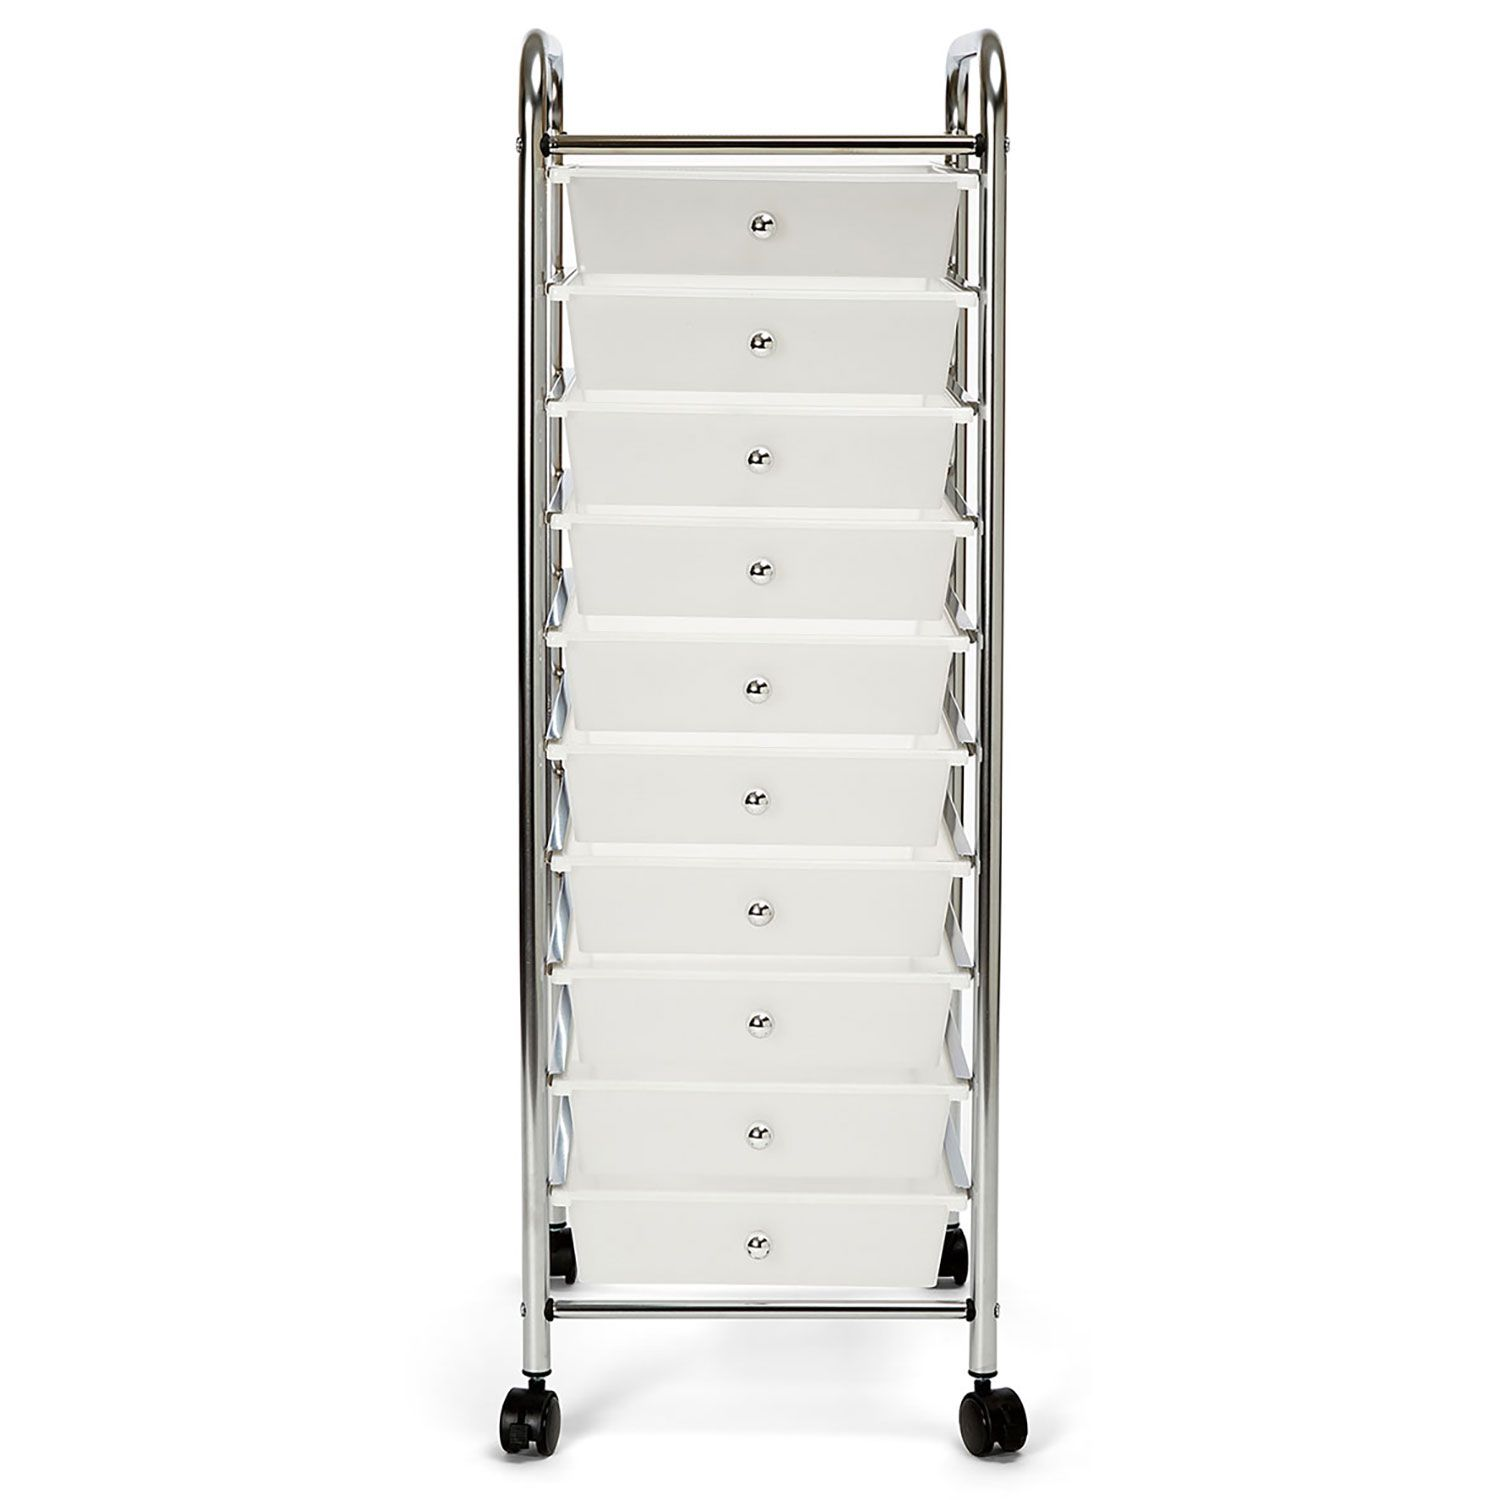 Counselor must haves: shallow drawer carts for organization